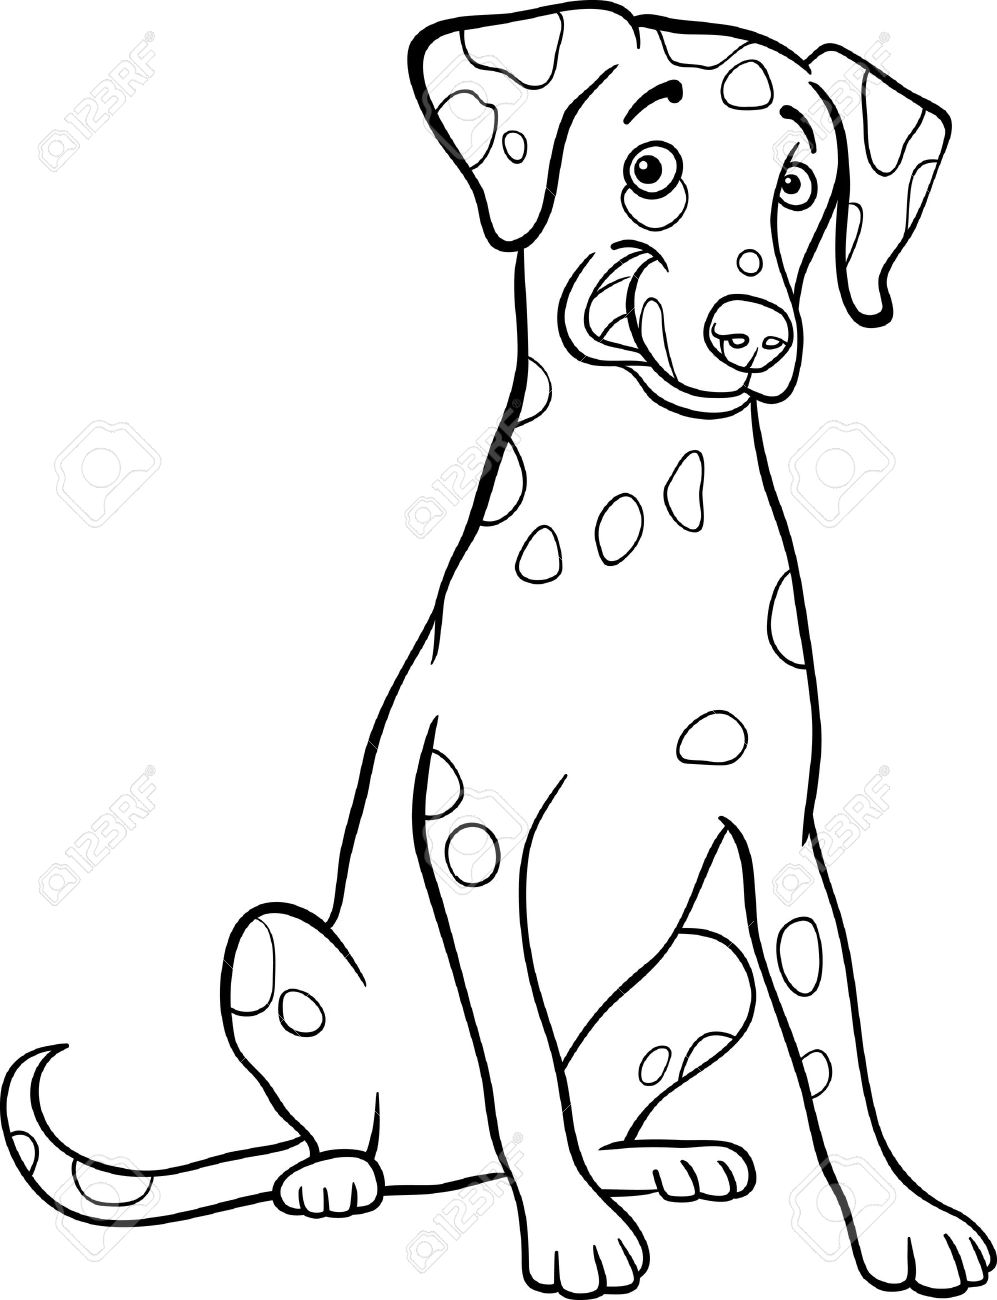 Dalmatian clipart black and white 2 » Clipart Station.